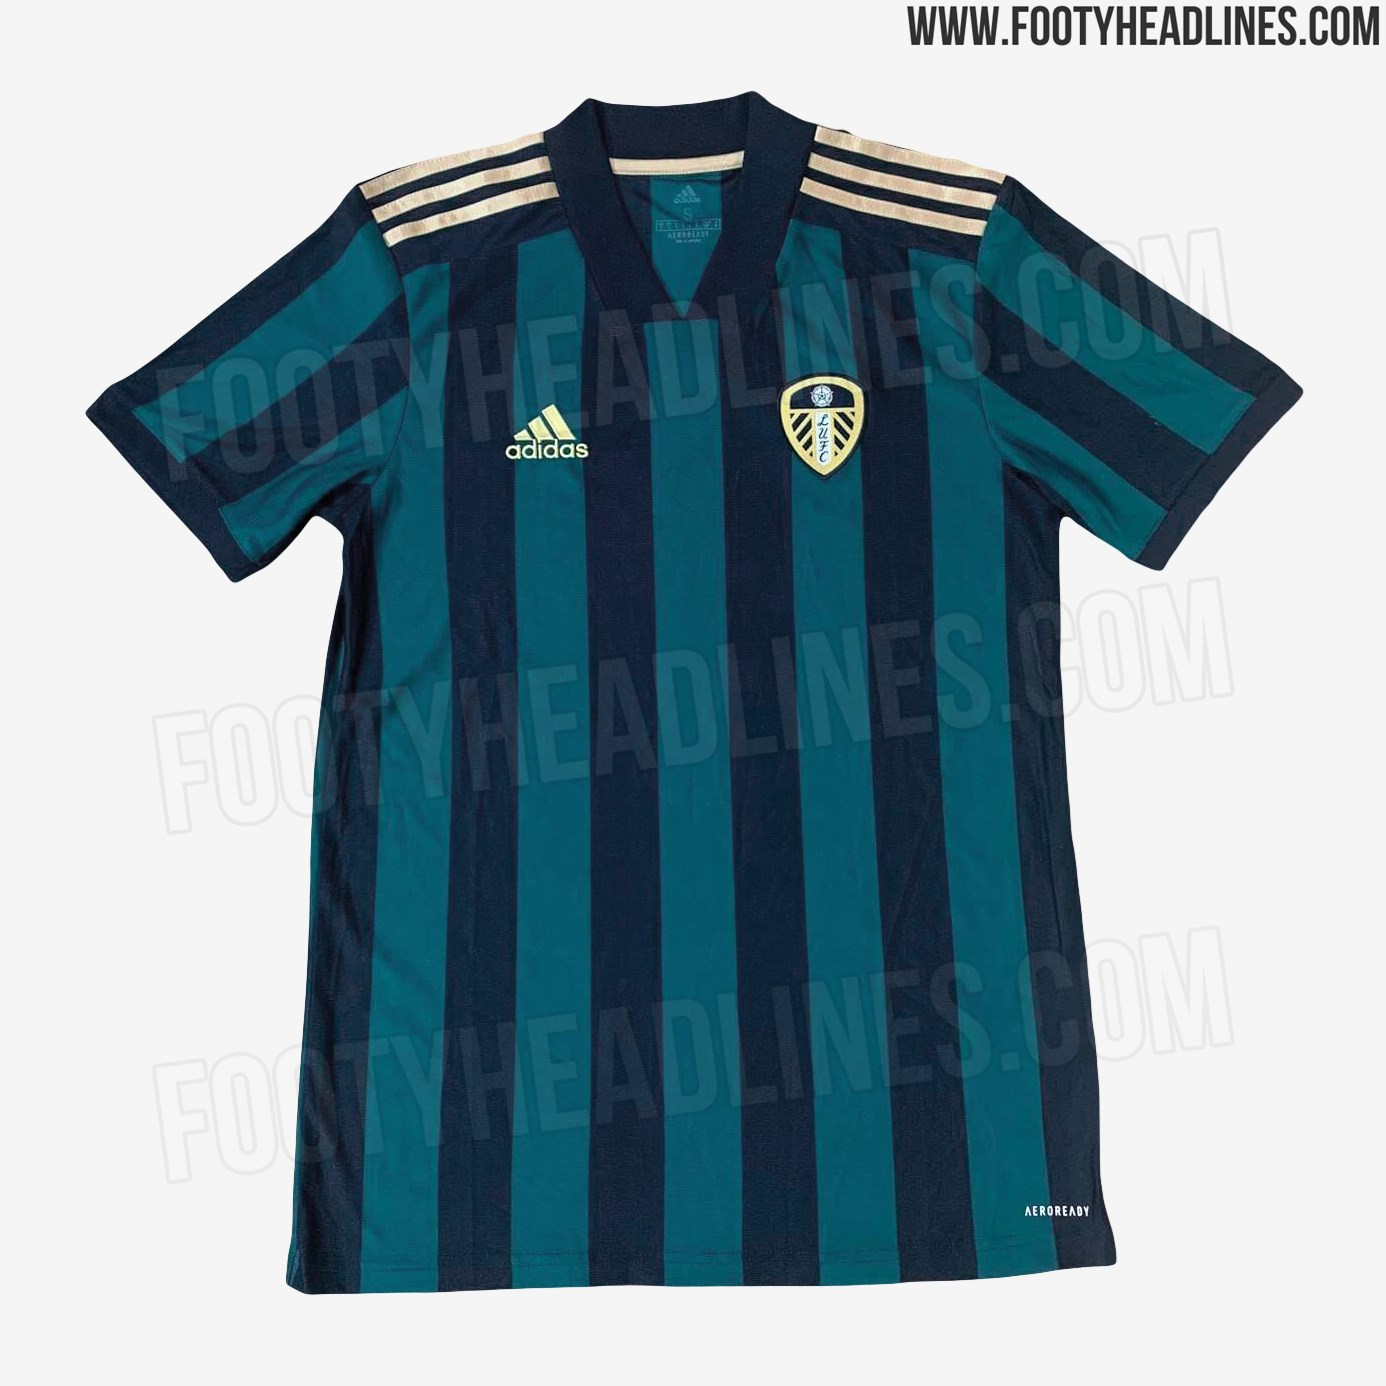 Update: Adidas Leeds United 20-21 Premier League (?) Away ...